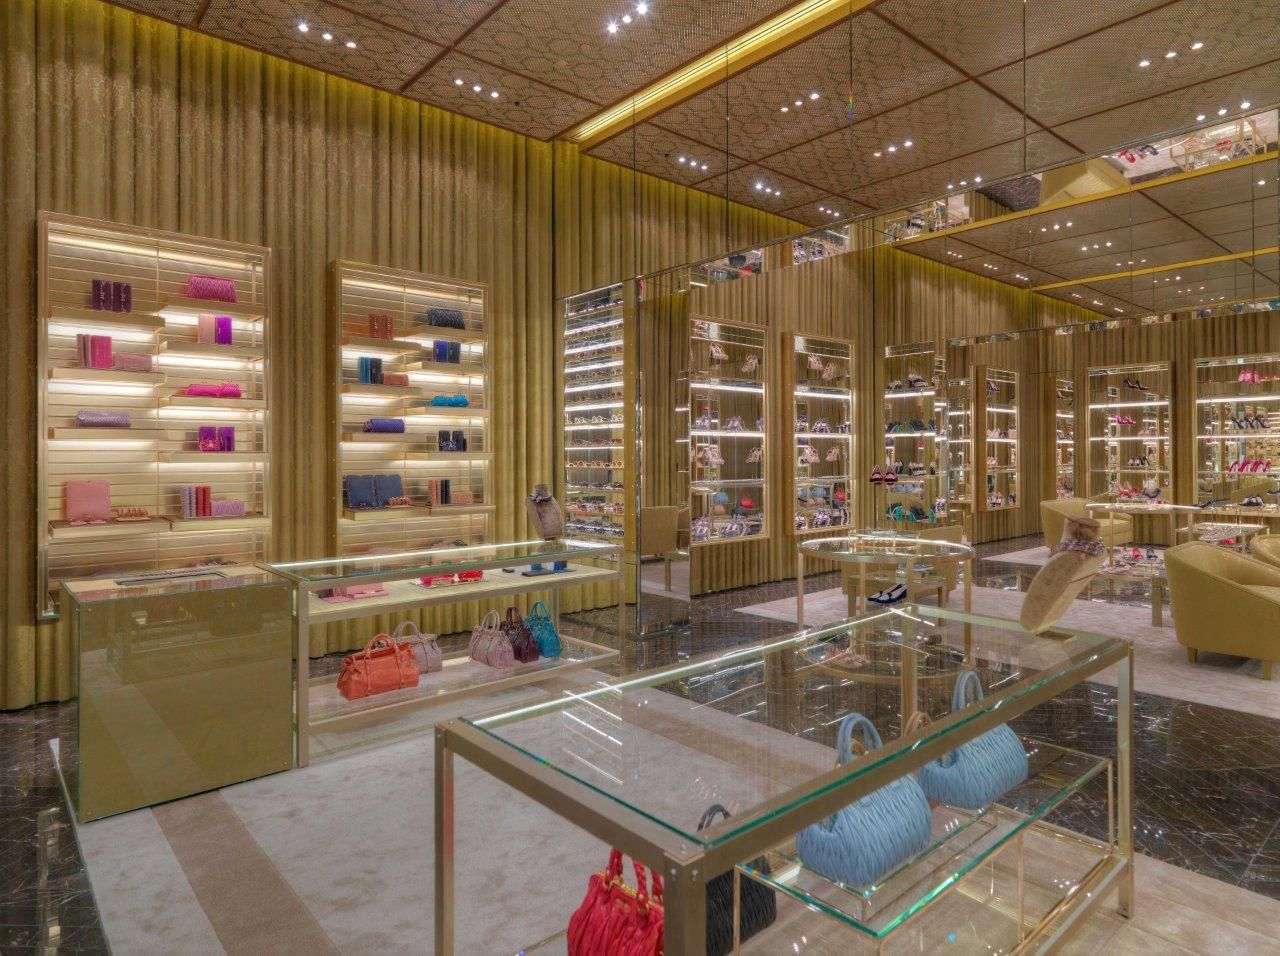 e8bed9b290e4 Miu Miu opens a new flagship store in the heart of Dubai ...